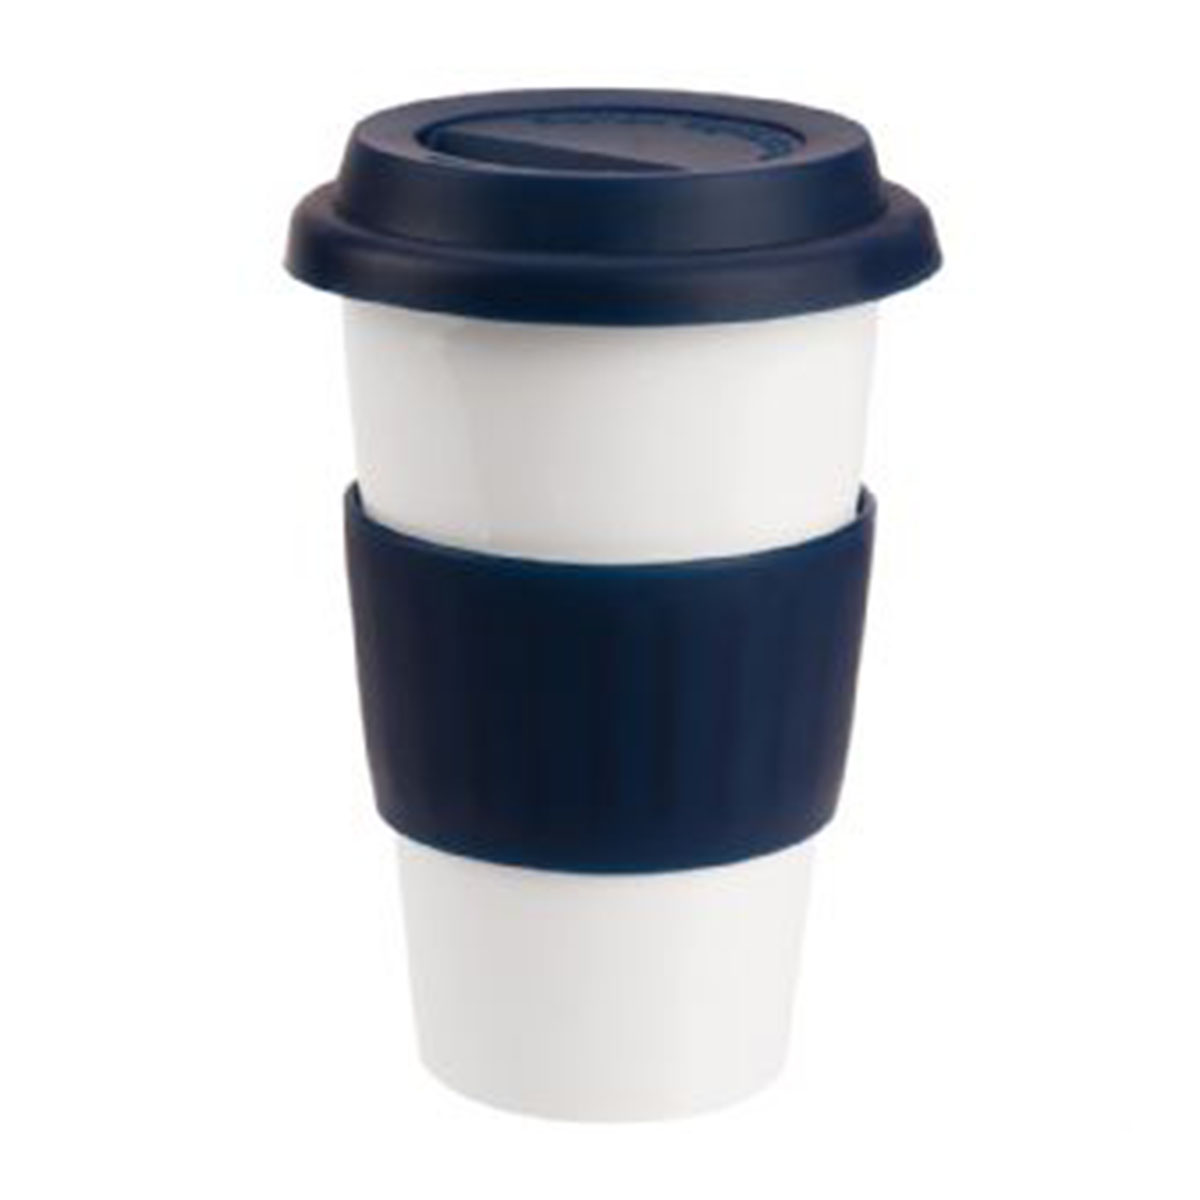 Ceramic Coffee Mug-White with Blue Band and Lid.